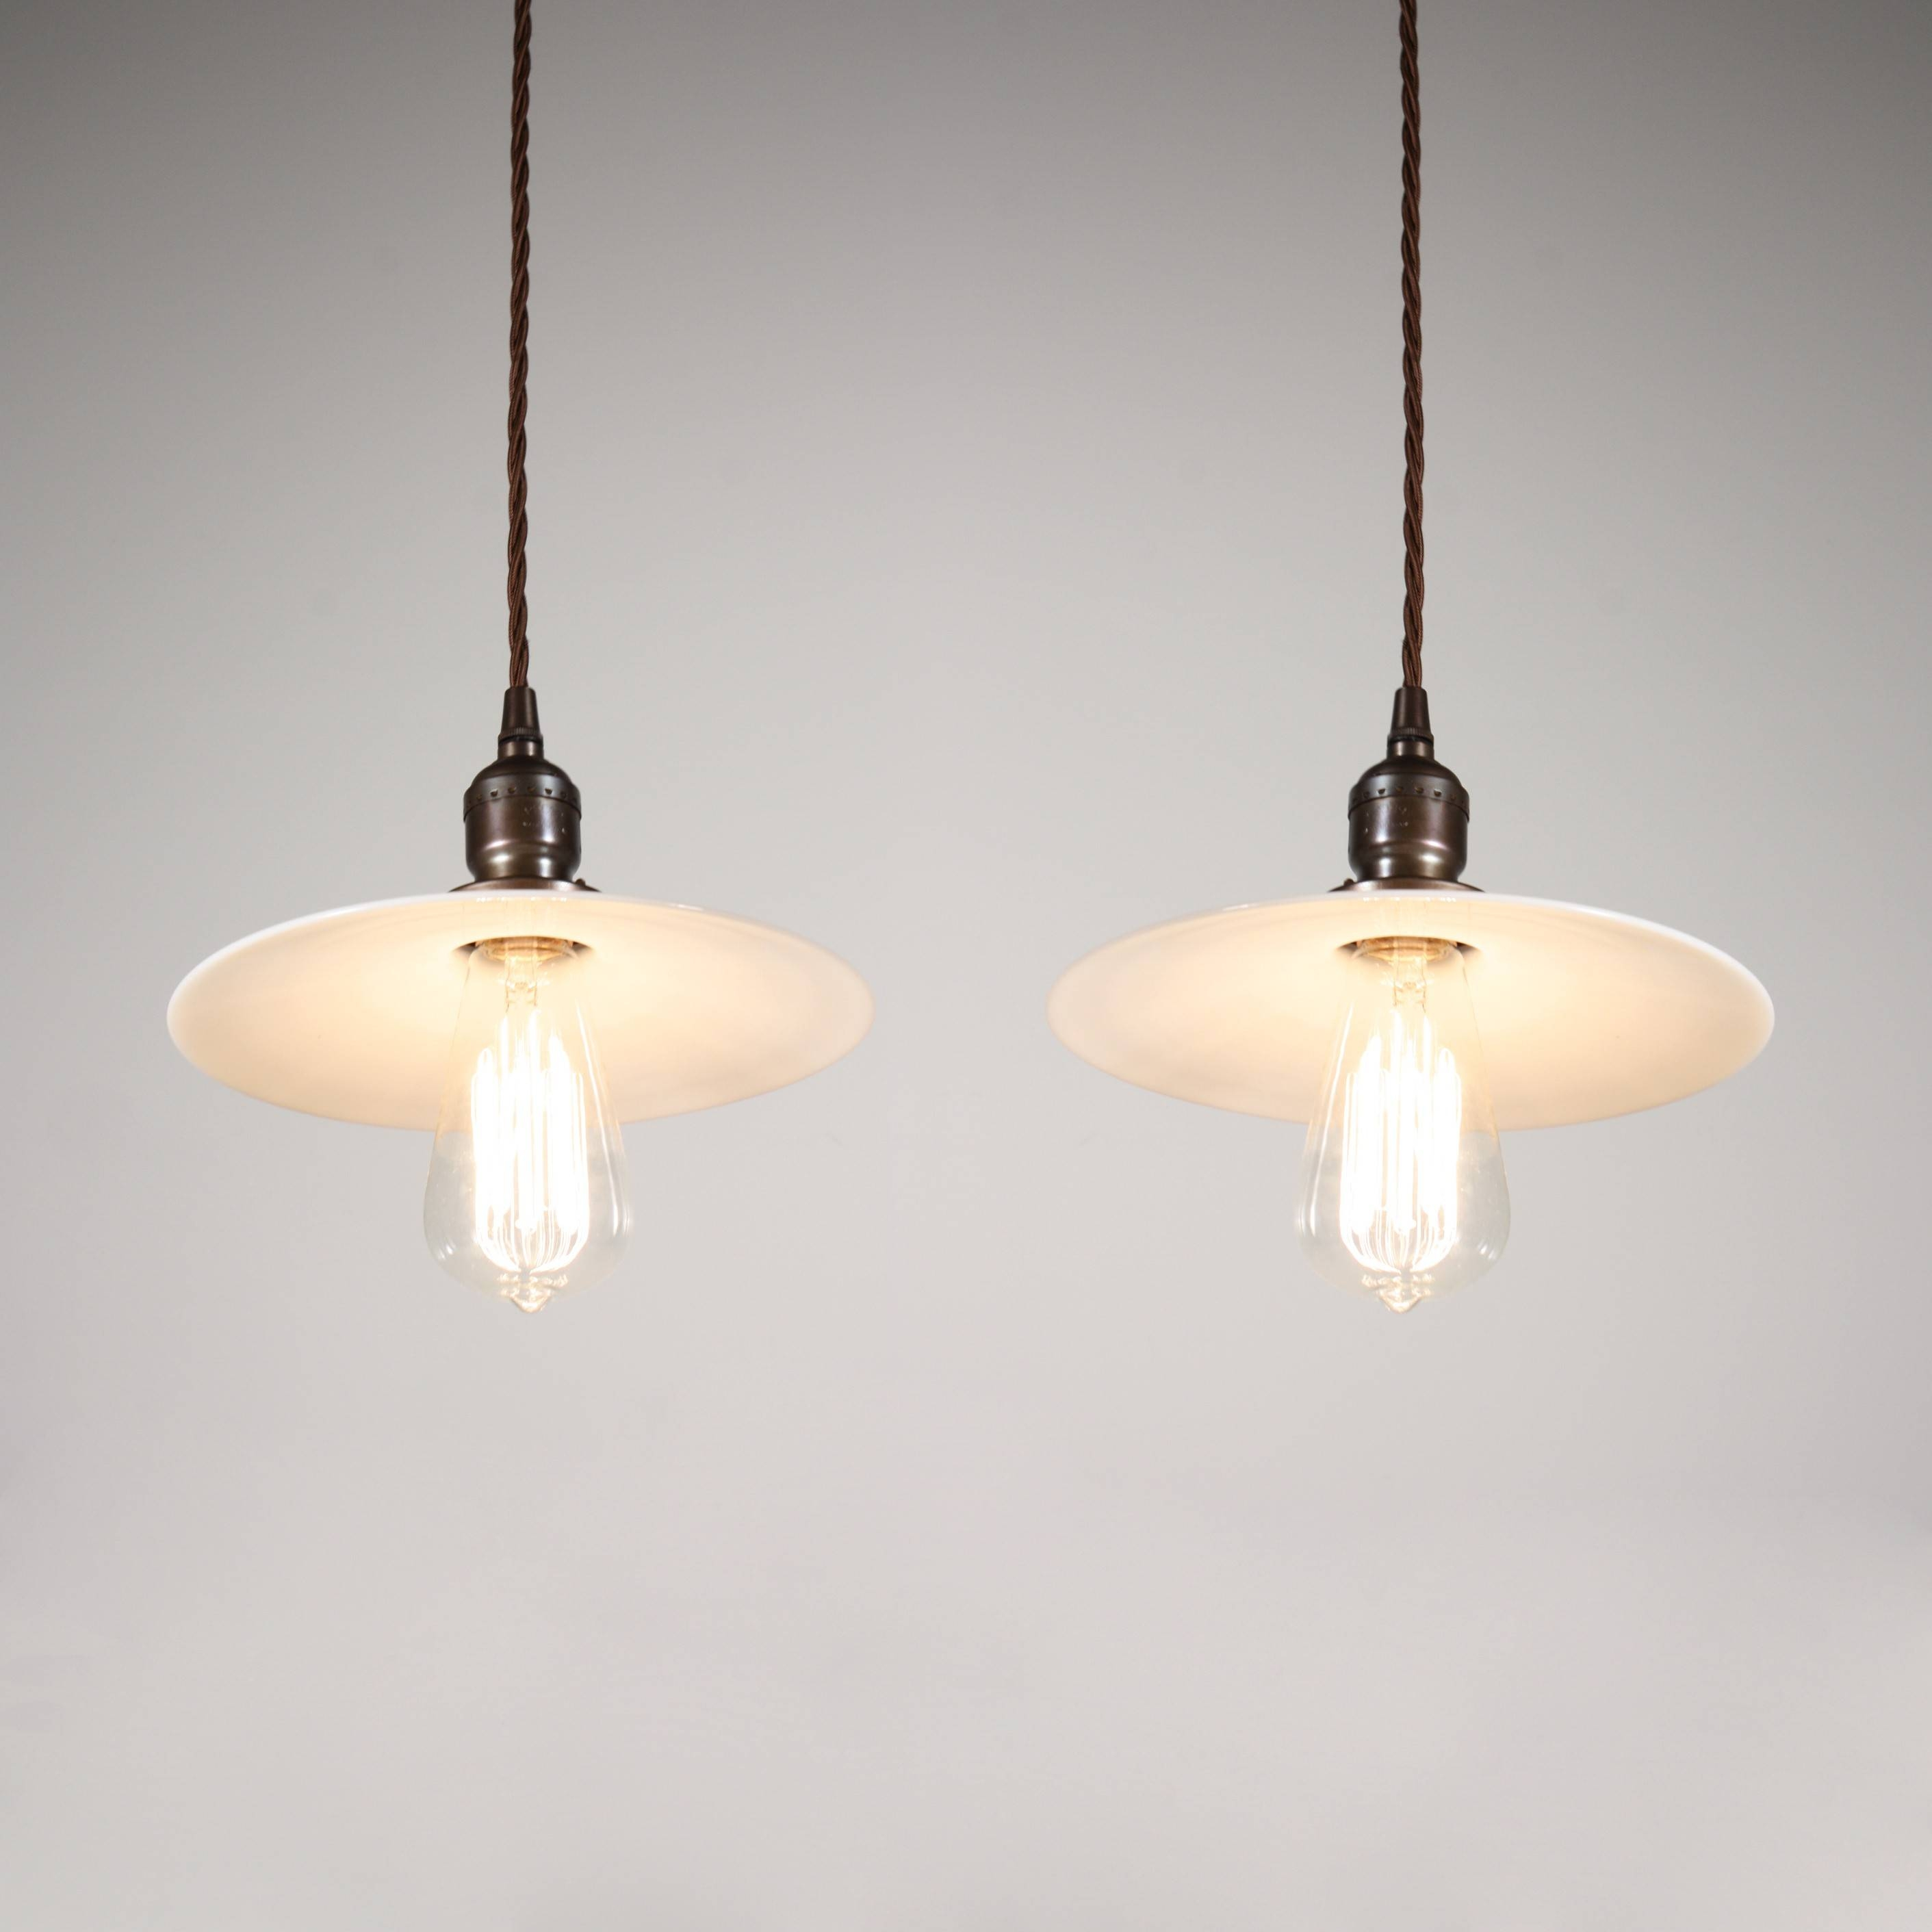 Two Matching Antique Industrial Pendant Lights With Milk Glass Throughout Milk Glass Pendant Lights (View 5 of 15)